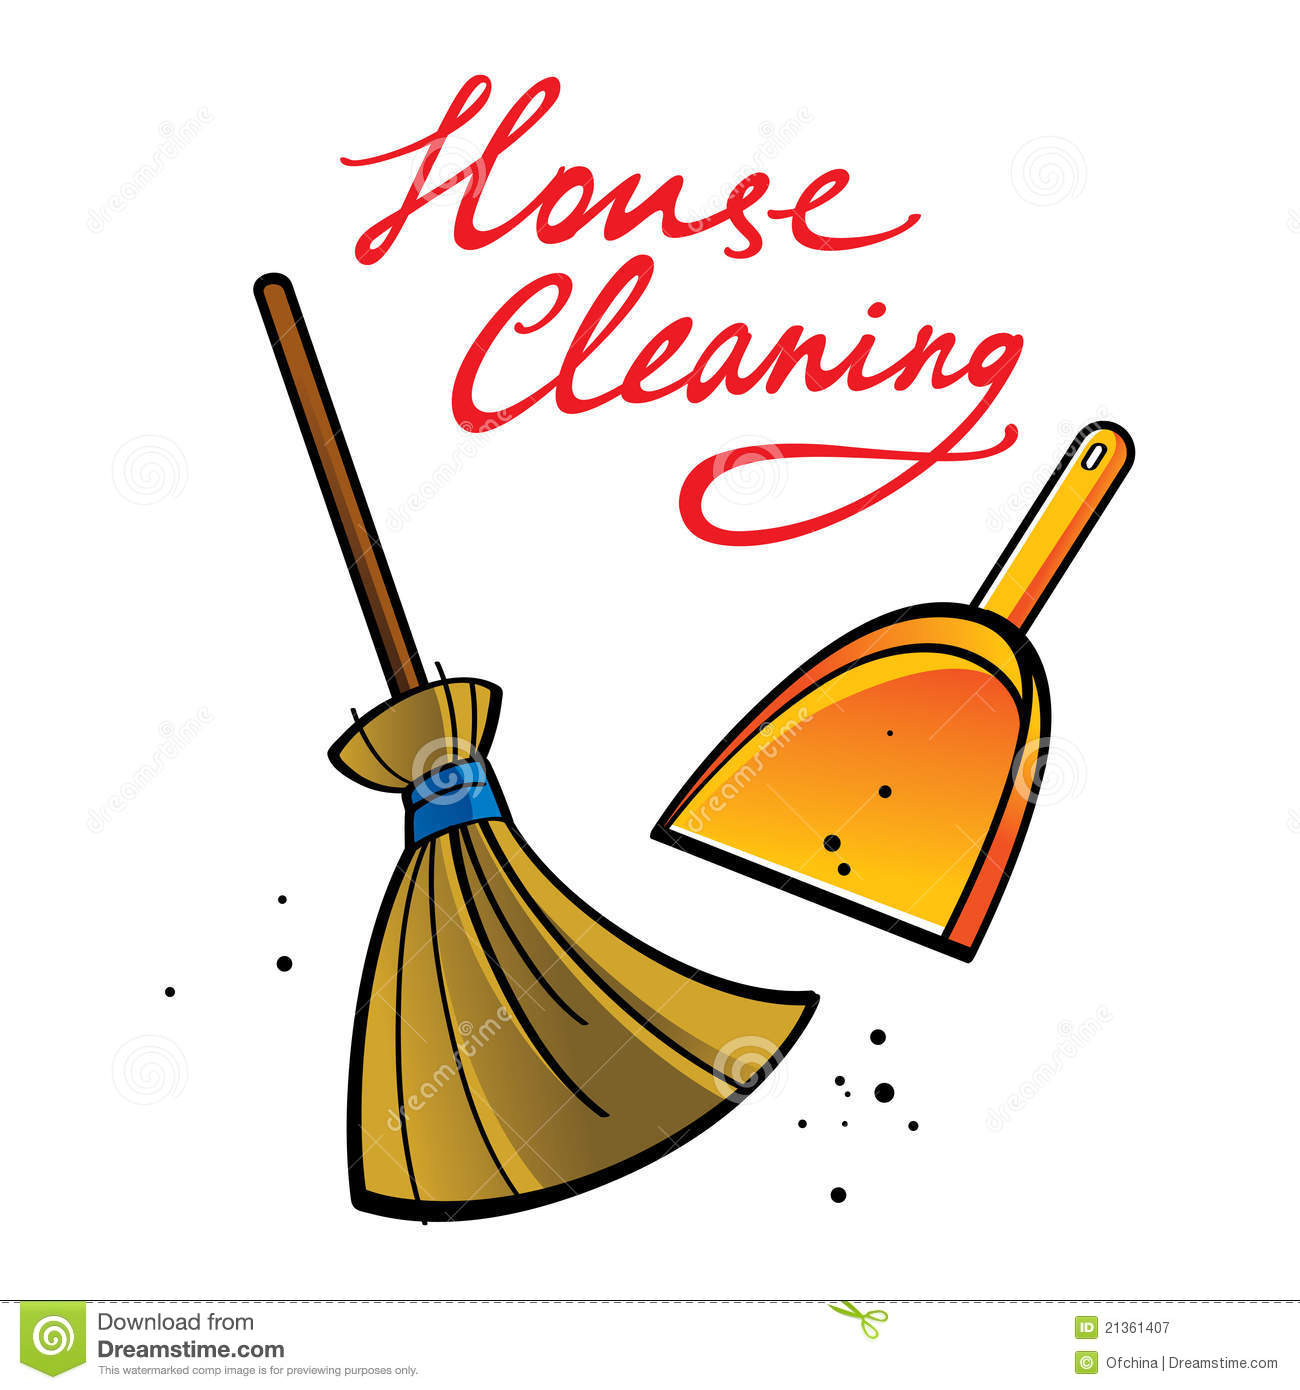 Christmas cleaning clipart image library House Cleaning Clipart Group with 55+ items image library